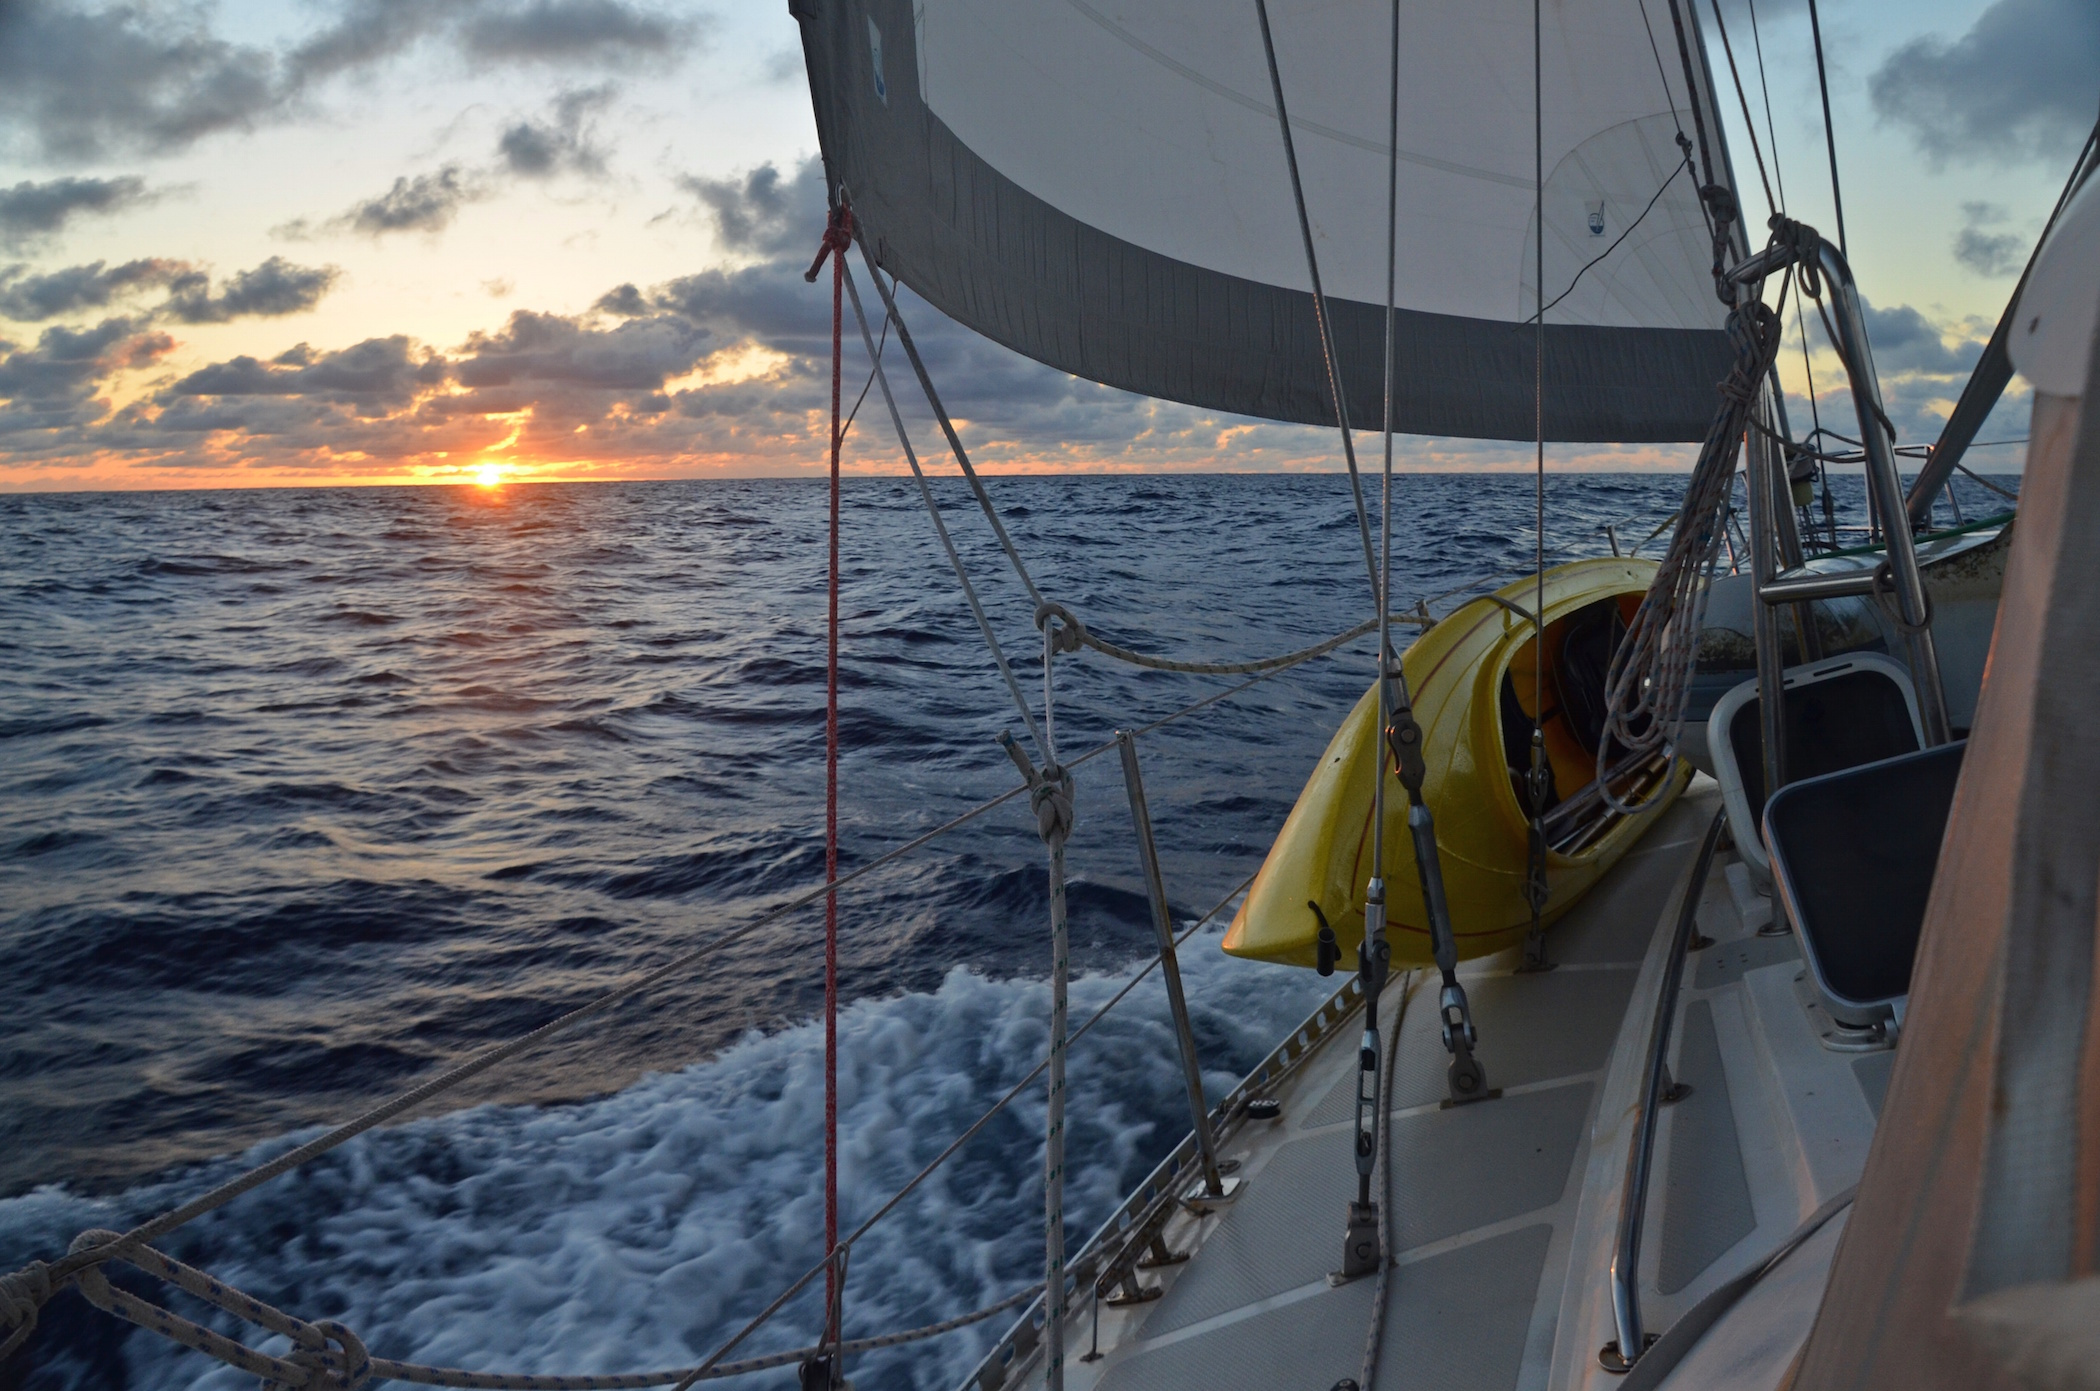 Sailing with a family around the world, www.sailingtotem.com - 'On the Wind' Sailing Podcast: Episode #175